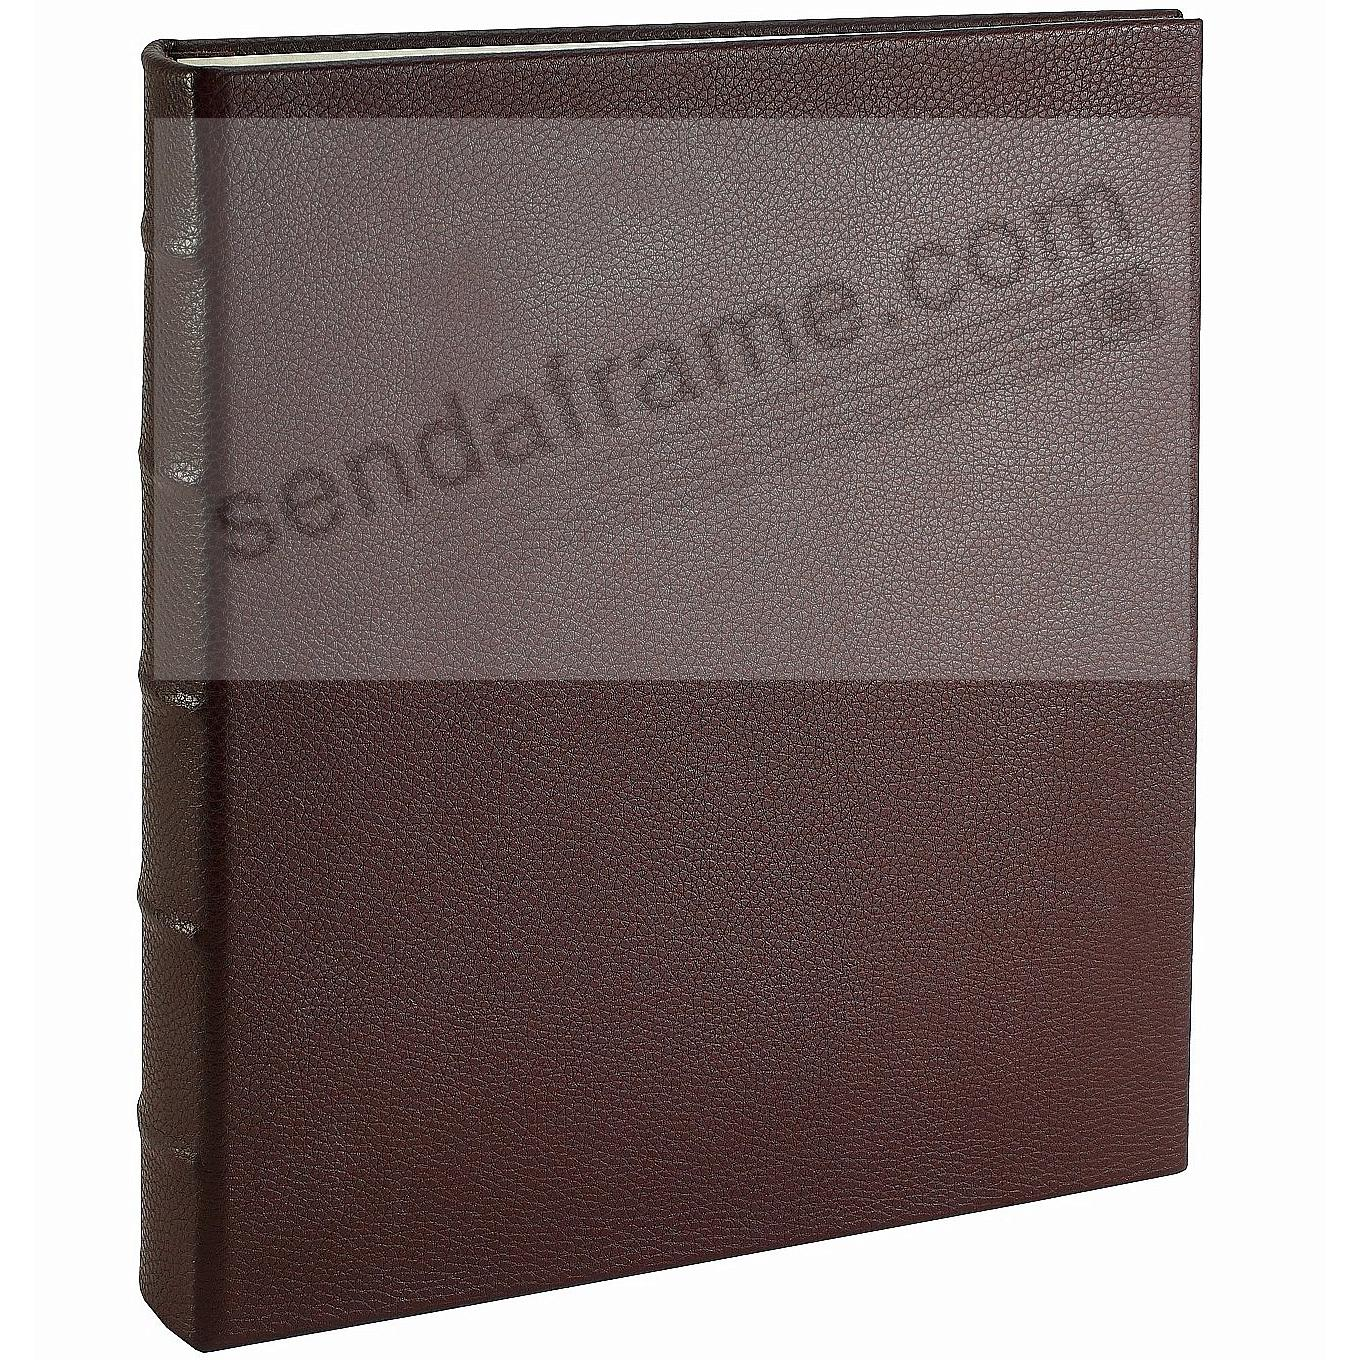 Post Impressions™ System Standard 3-ring  Binder Pebble-Brown Eco-leather (unfilled)